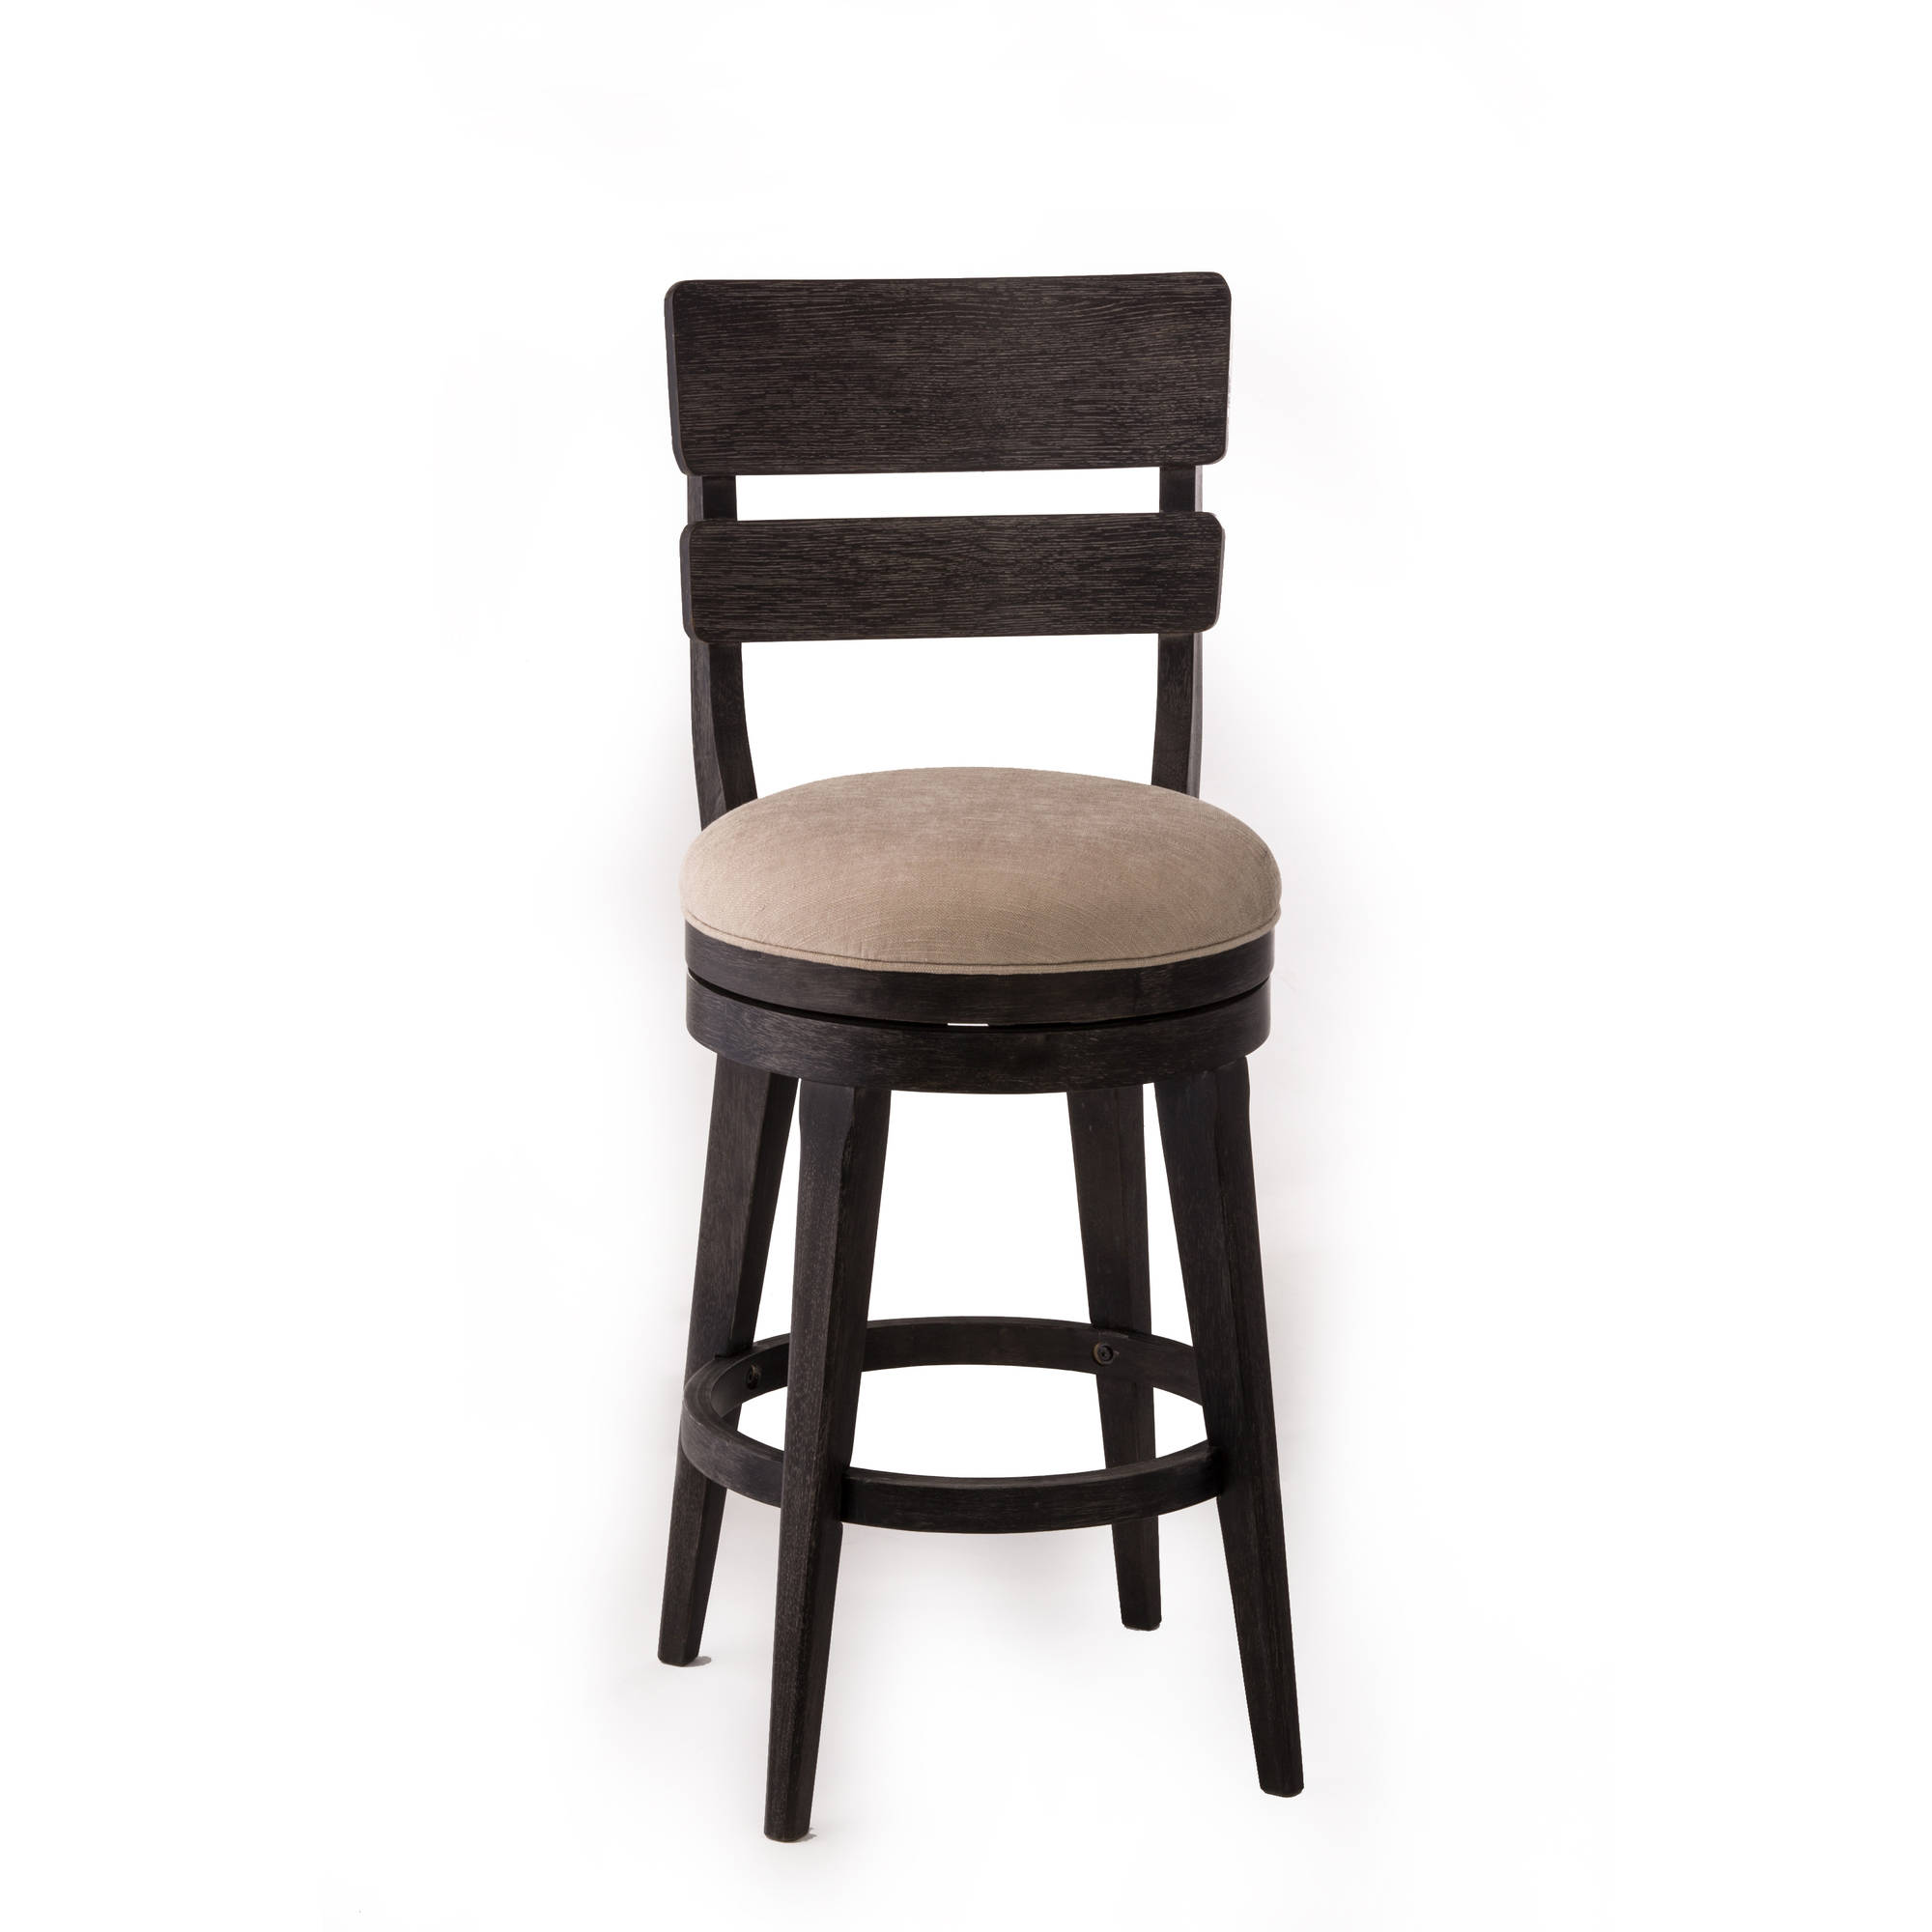 Leclair Swivel Counter Stool, Black Wire Brushed Finish by Hillsdale Furniture